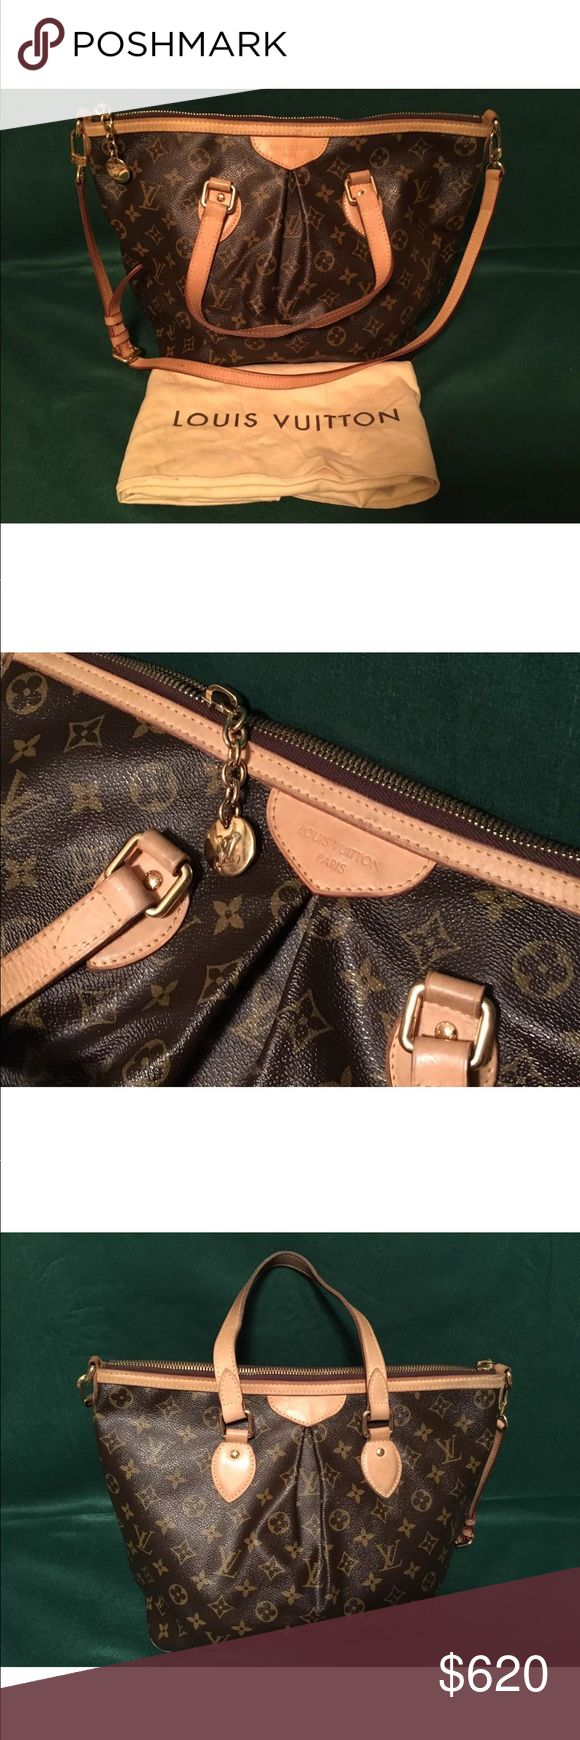 Authentic Louis Vuitton Palermo PM Monogram Bag Comes with dust cover. Used but pretty good condition. Outside looks very good. Inside has a few small stains but not bad. Zipper works great. All hardwear in good condition. Serial number on interior. TEXT ME AT (5 one 3) 4 five 4 - 5 two 4 nine  for a better price ($500) due to poshmart fees! Louis Vuitton Bags Shoulder Bags